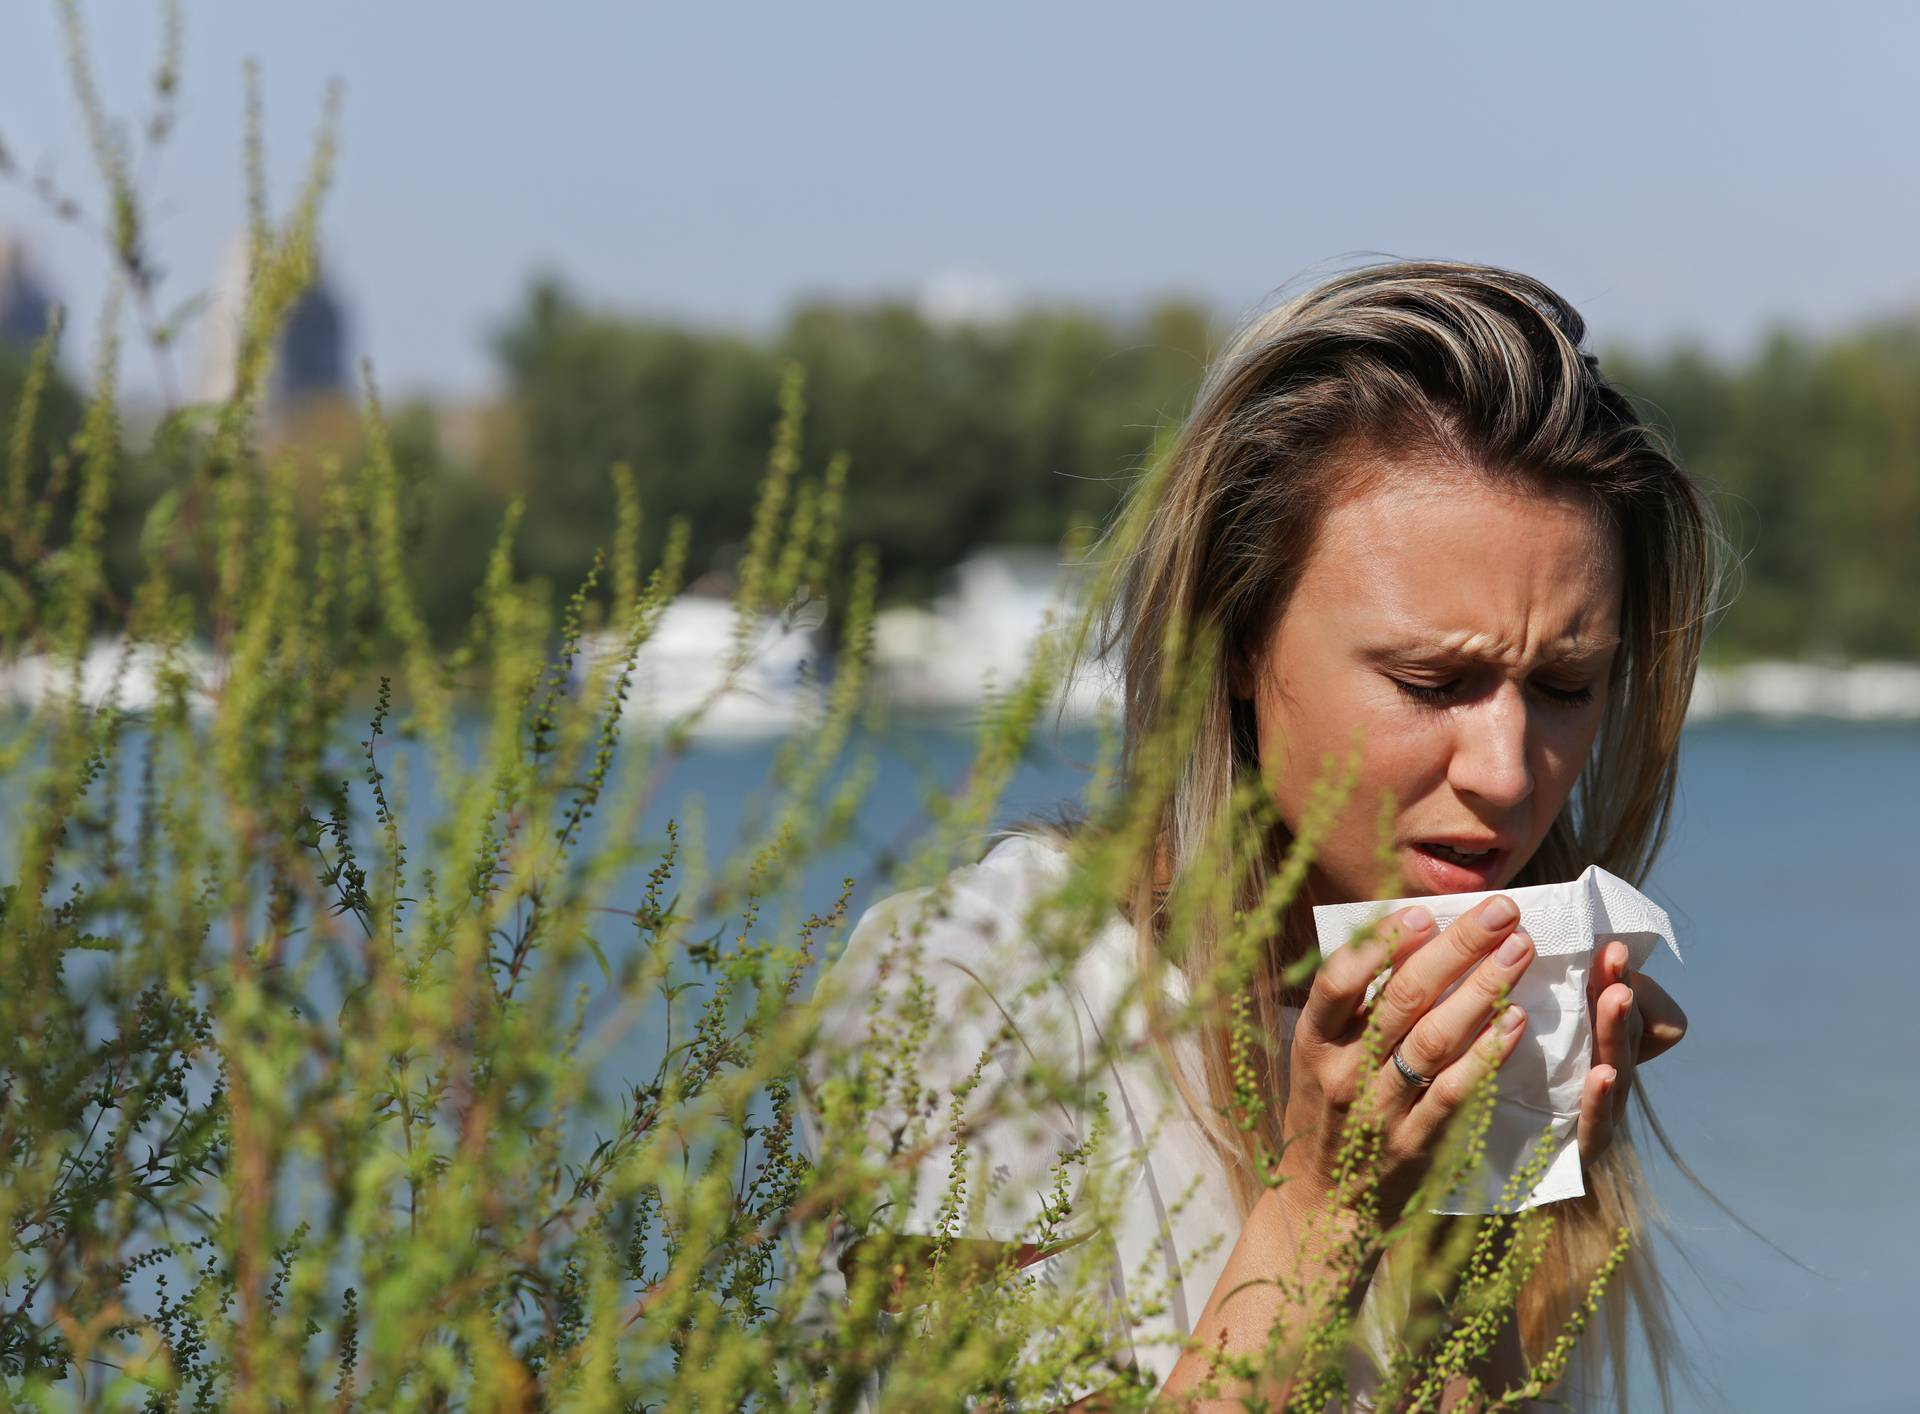 Pollen, Ragweed allergy, Woman sneezing in a tissue otdoors